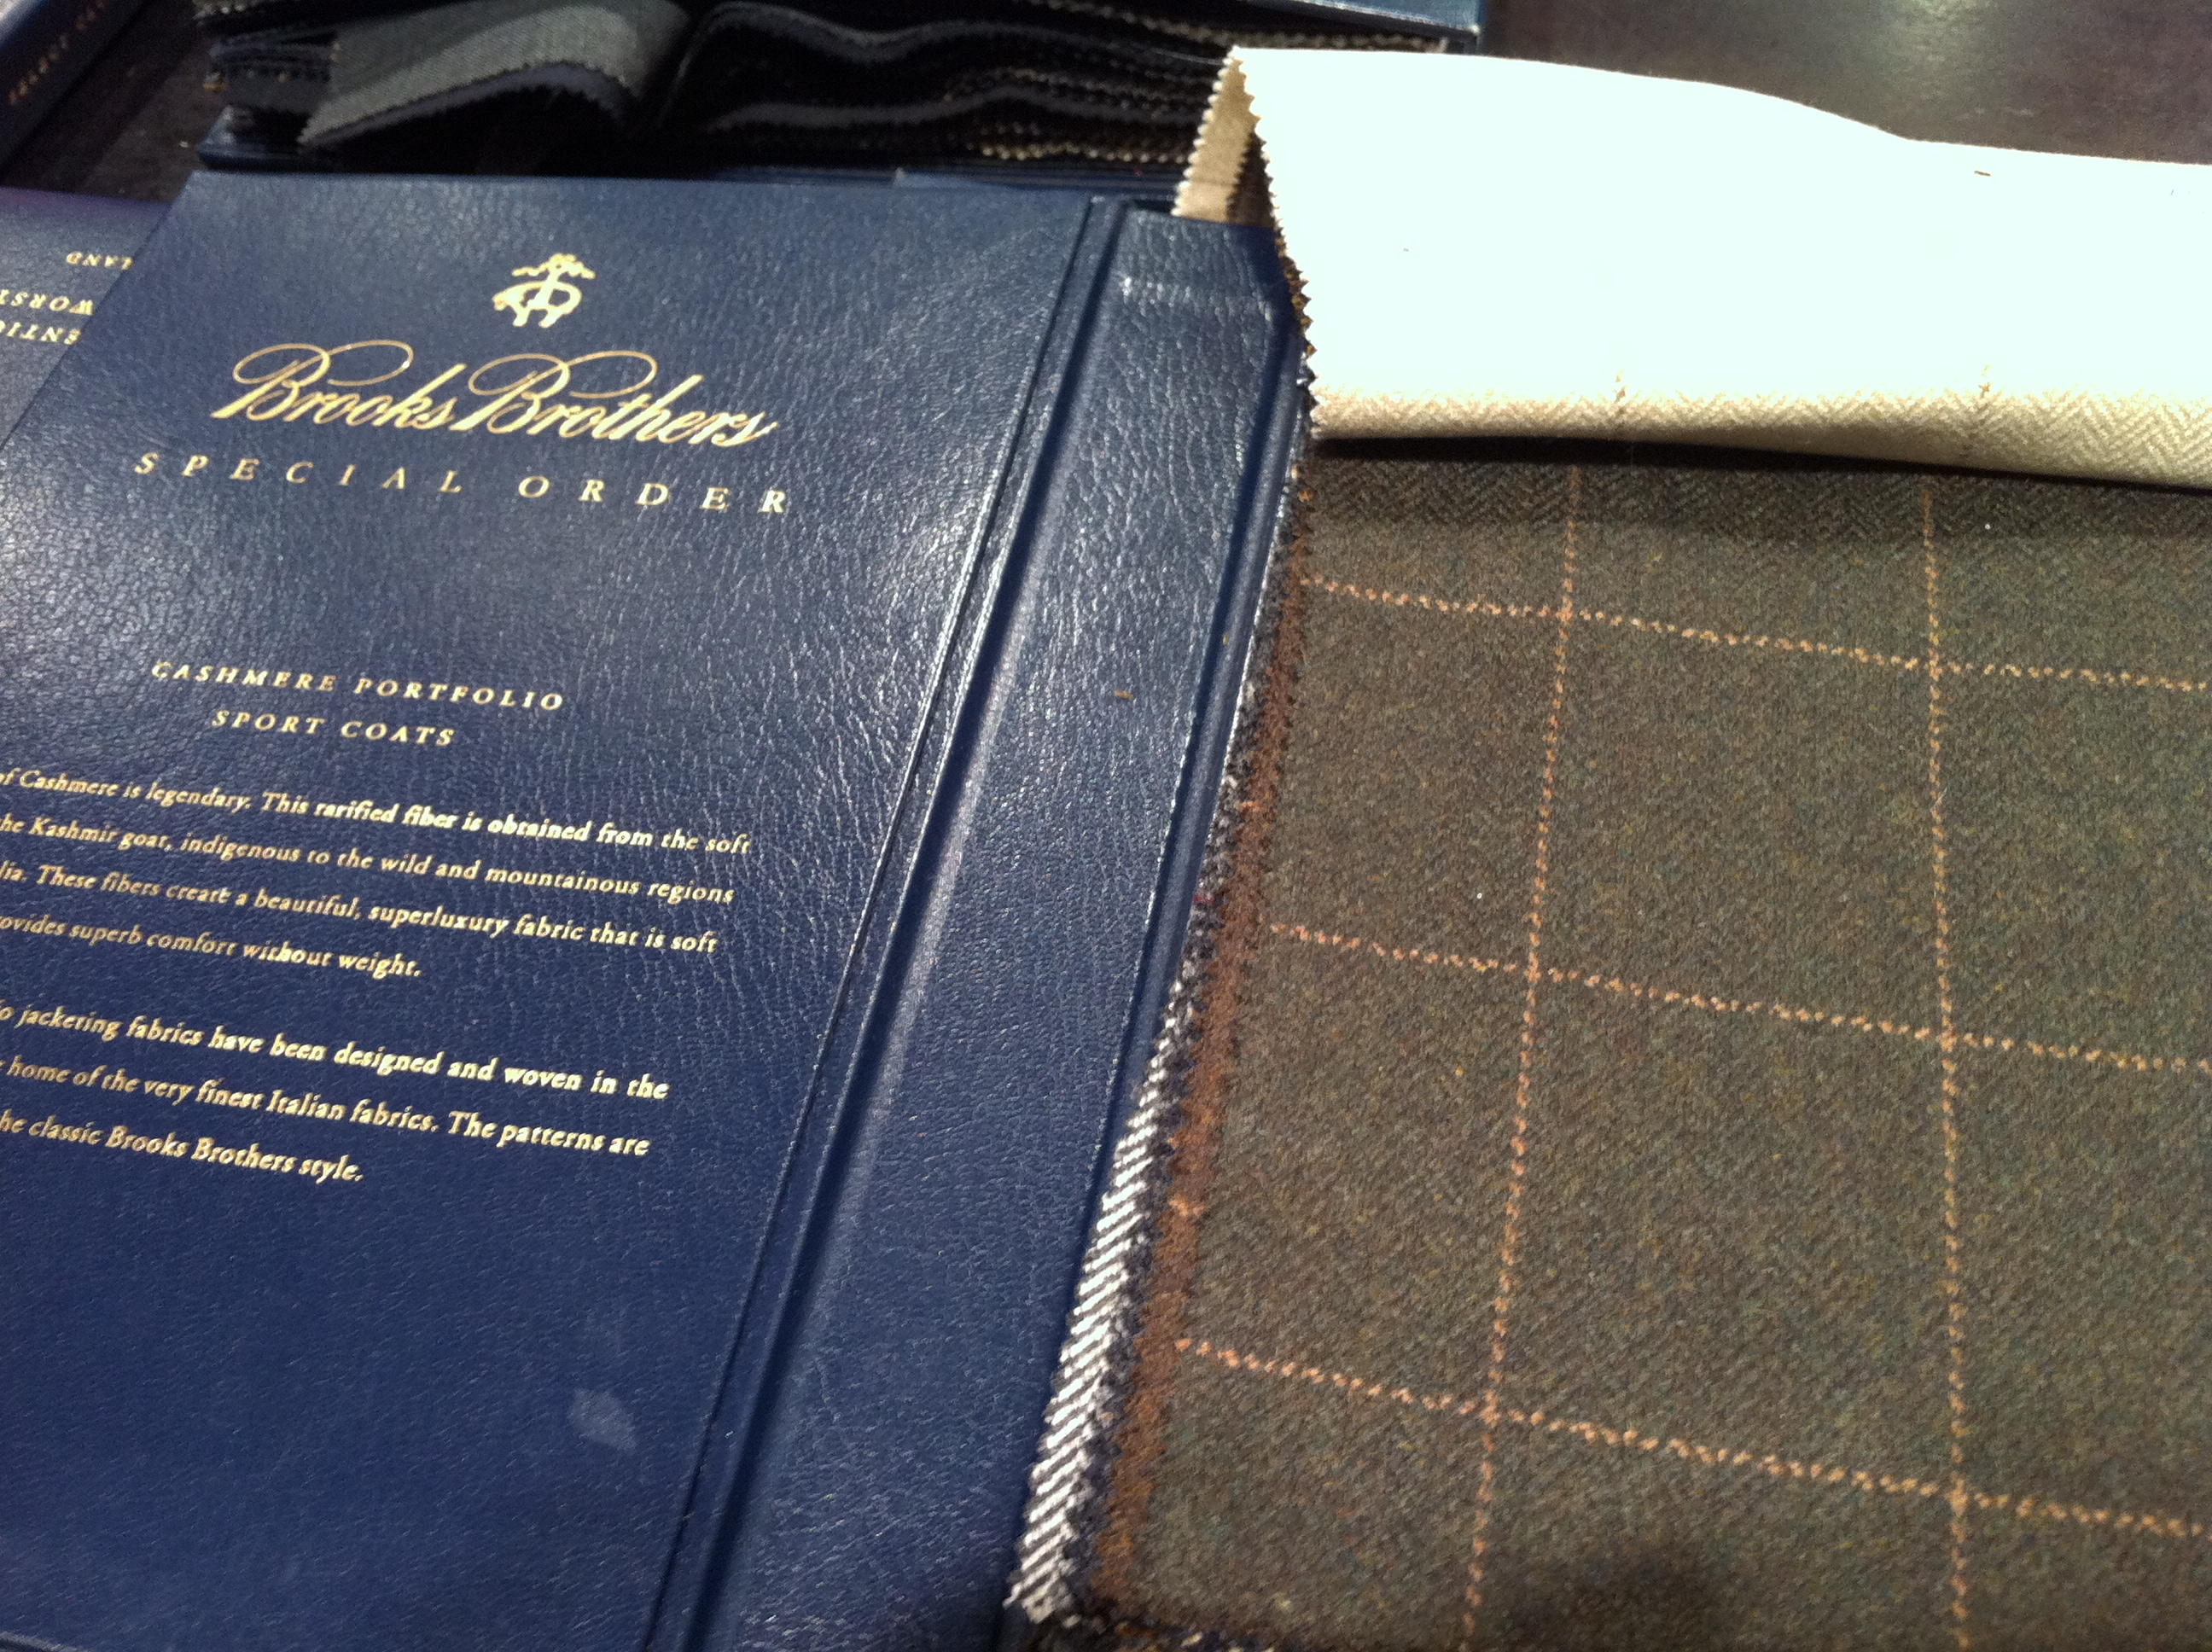 Cashmere Sports Coat Fabrics from Brooks Brothers